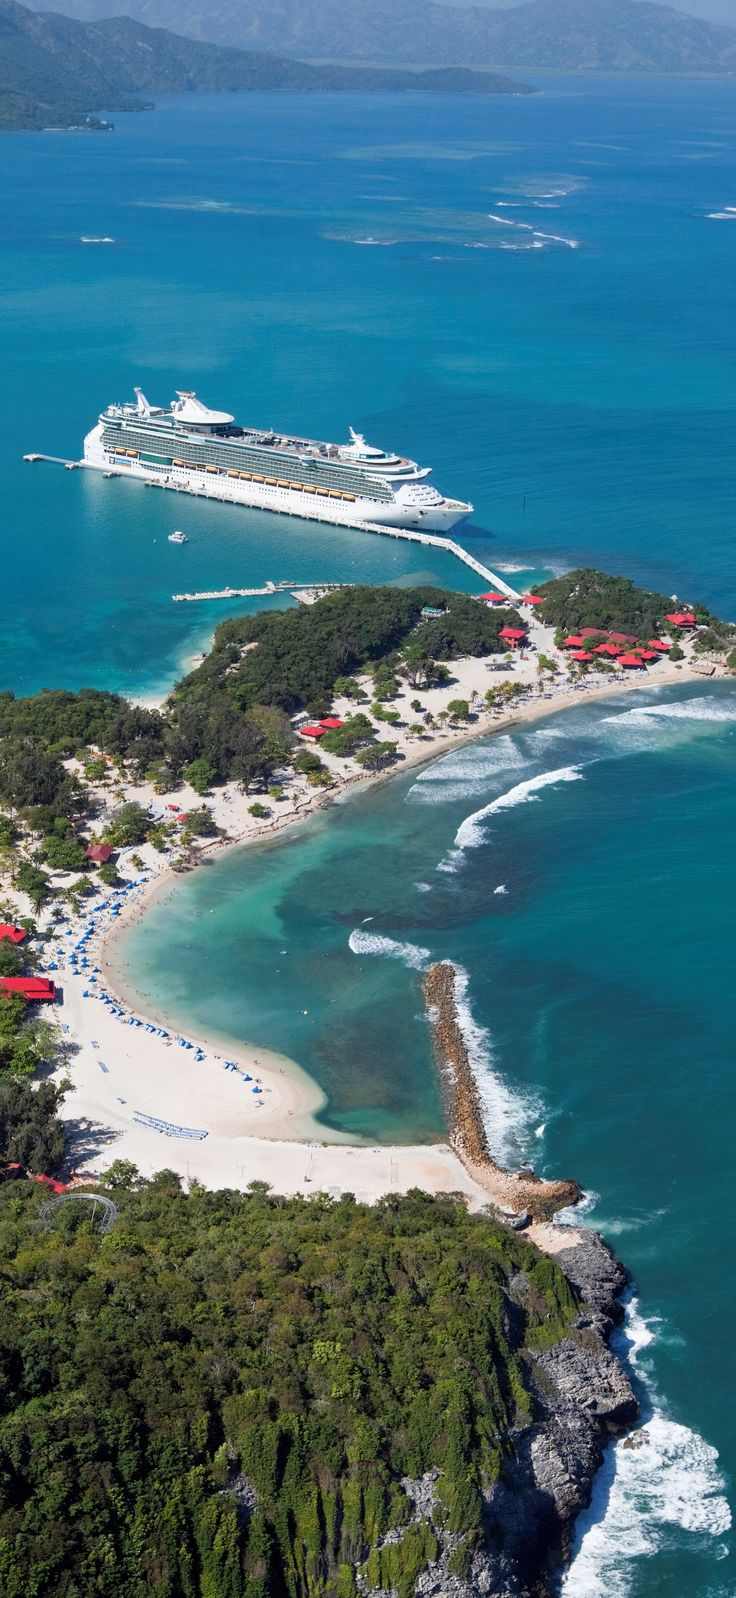 19 best images about haiti paradise on earth on for Best caribbean vacations in december